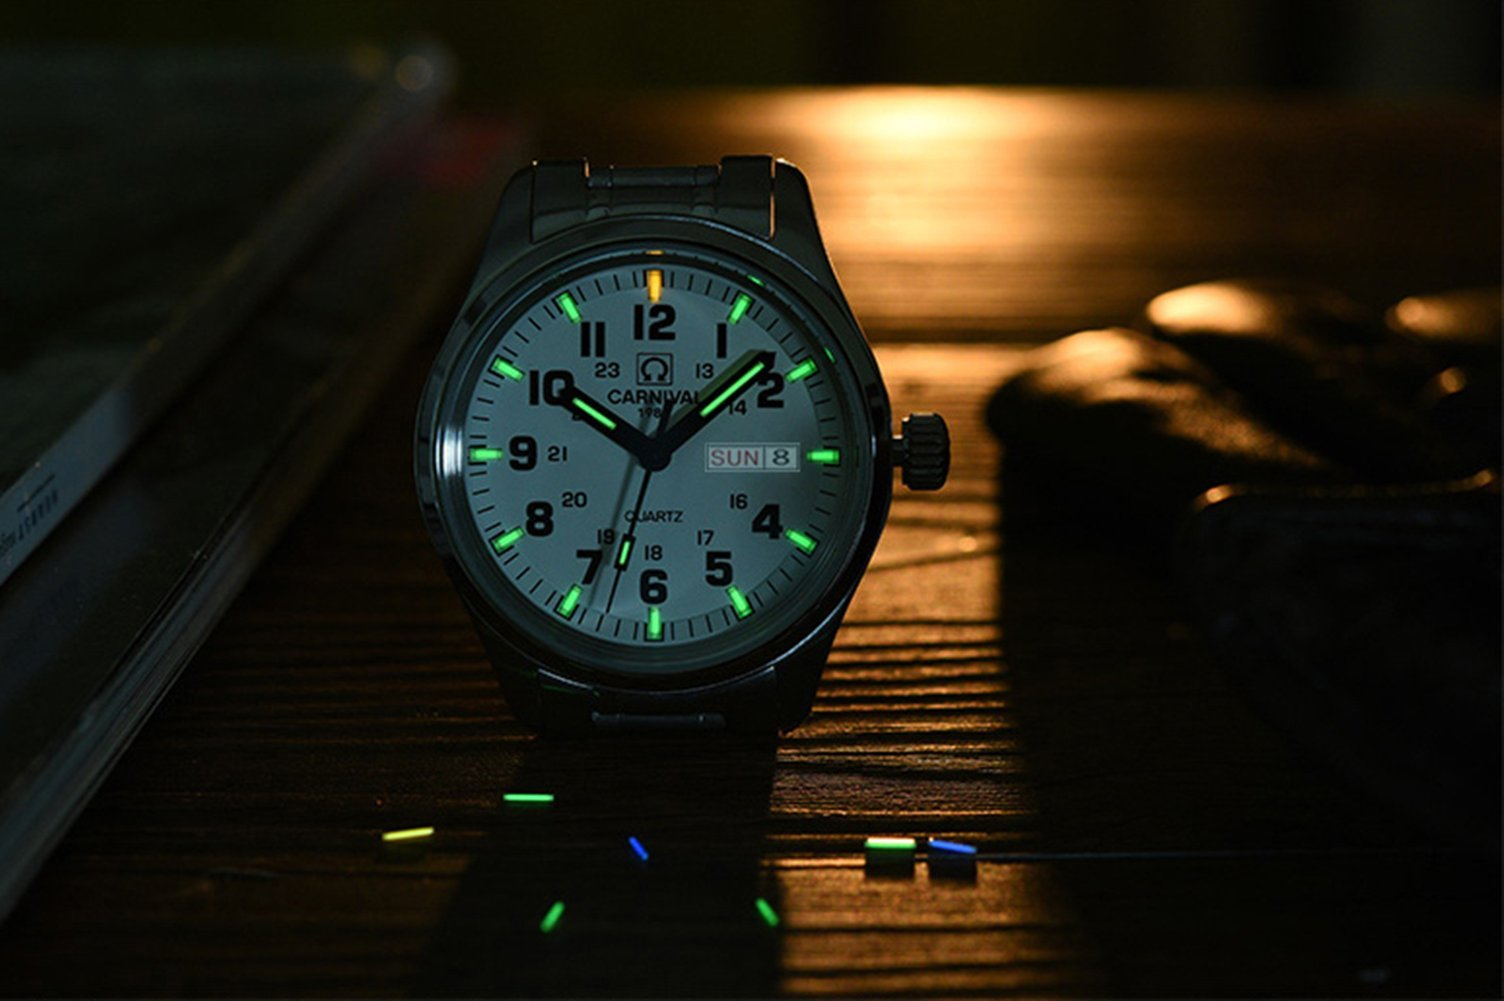 Luminous Wrist Watch waterproof stainless steel Tube Lamp Self Luminous 25 Years Fluorescent Watch for Outdoor Sports by Jenson007